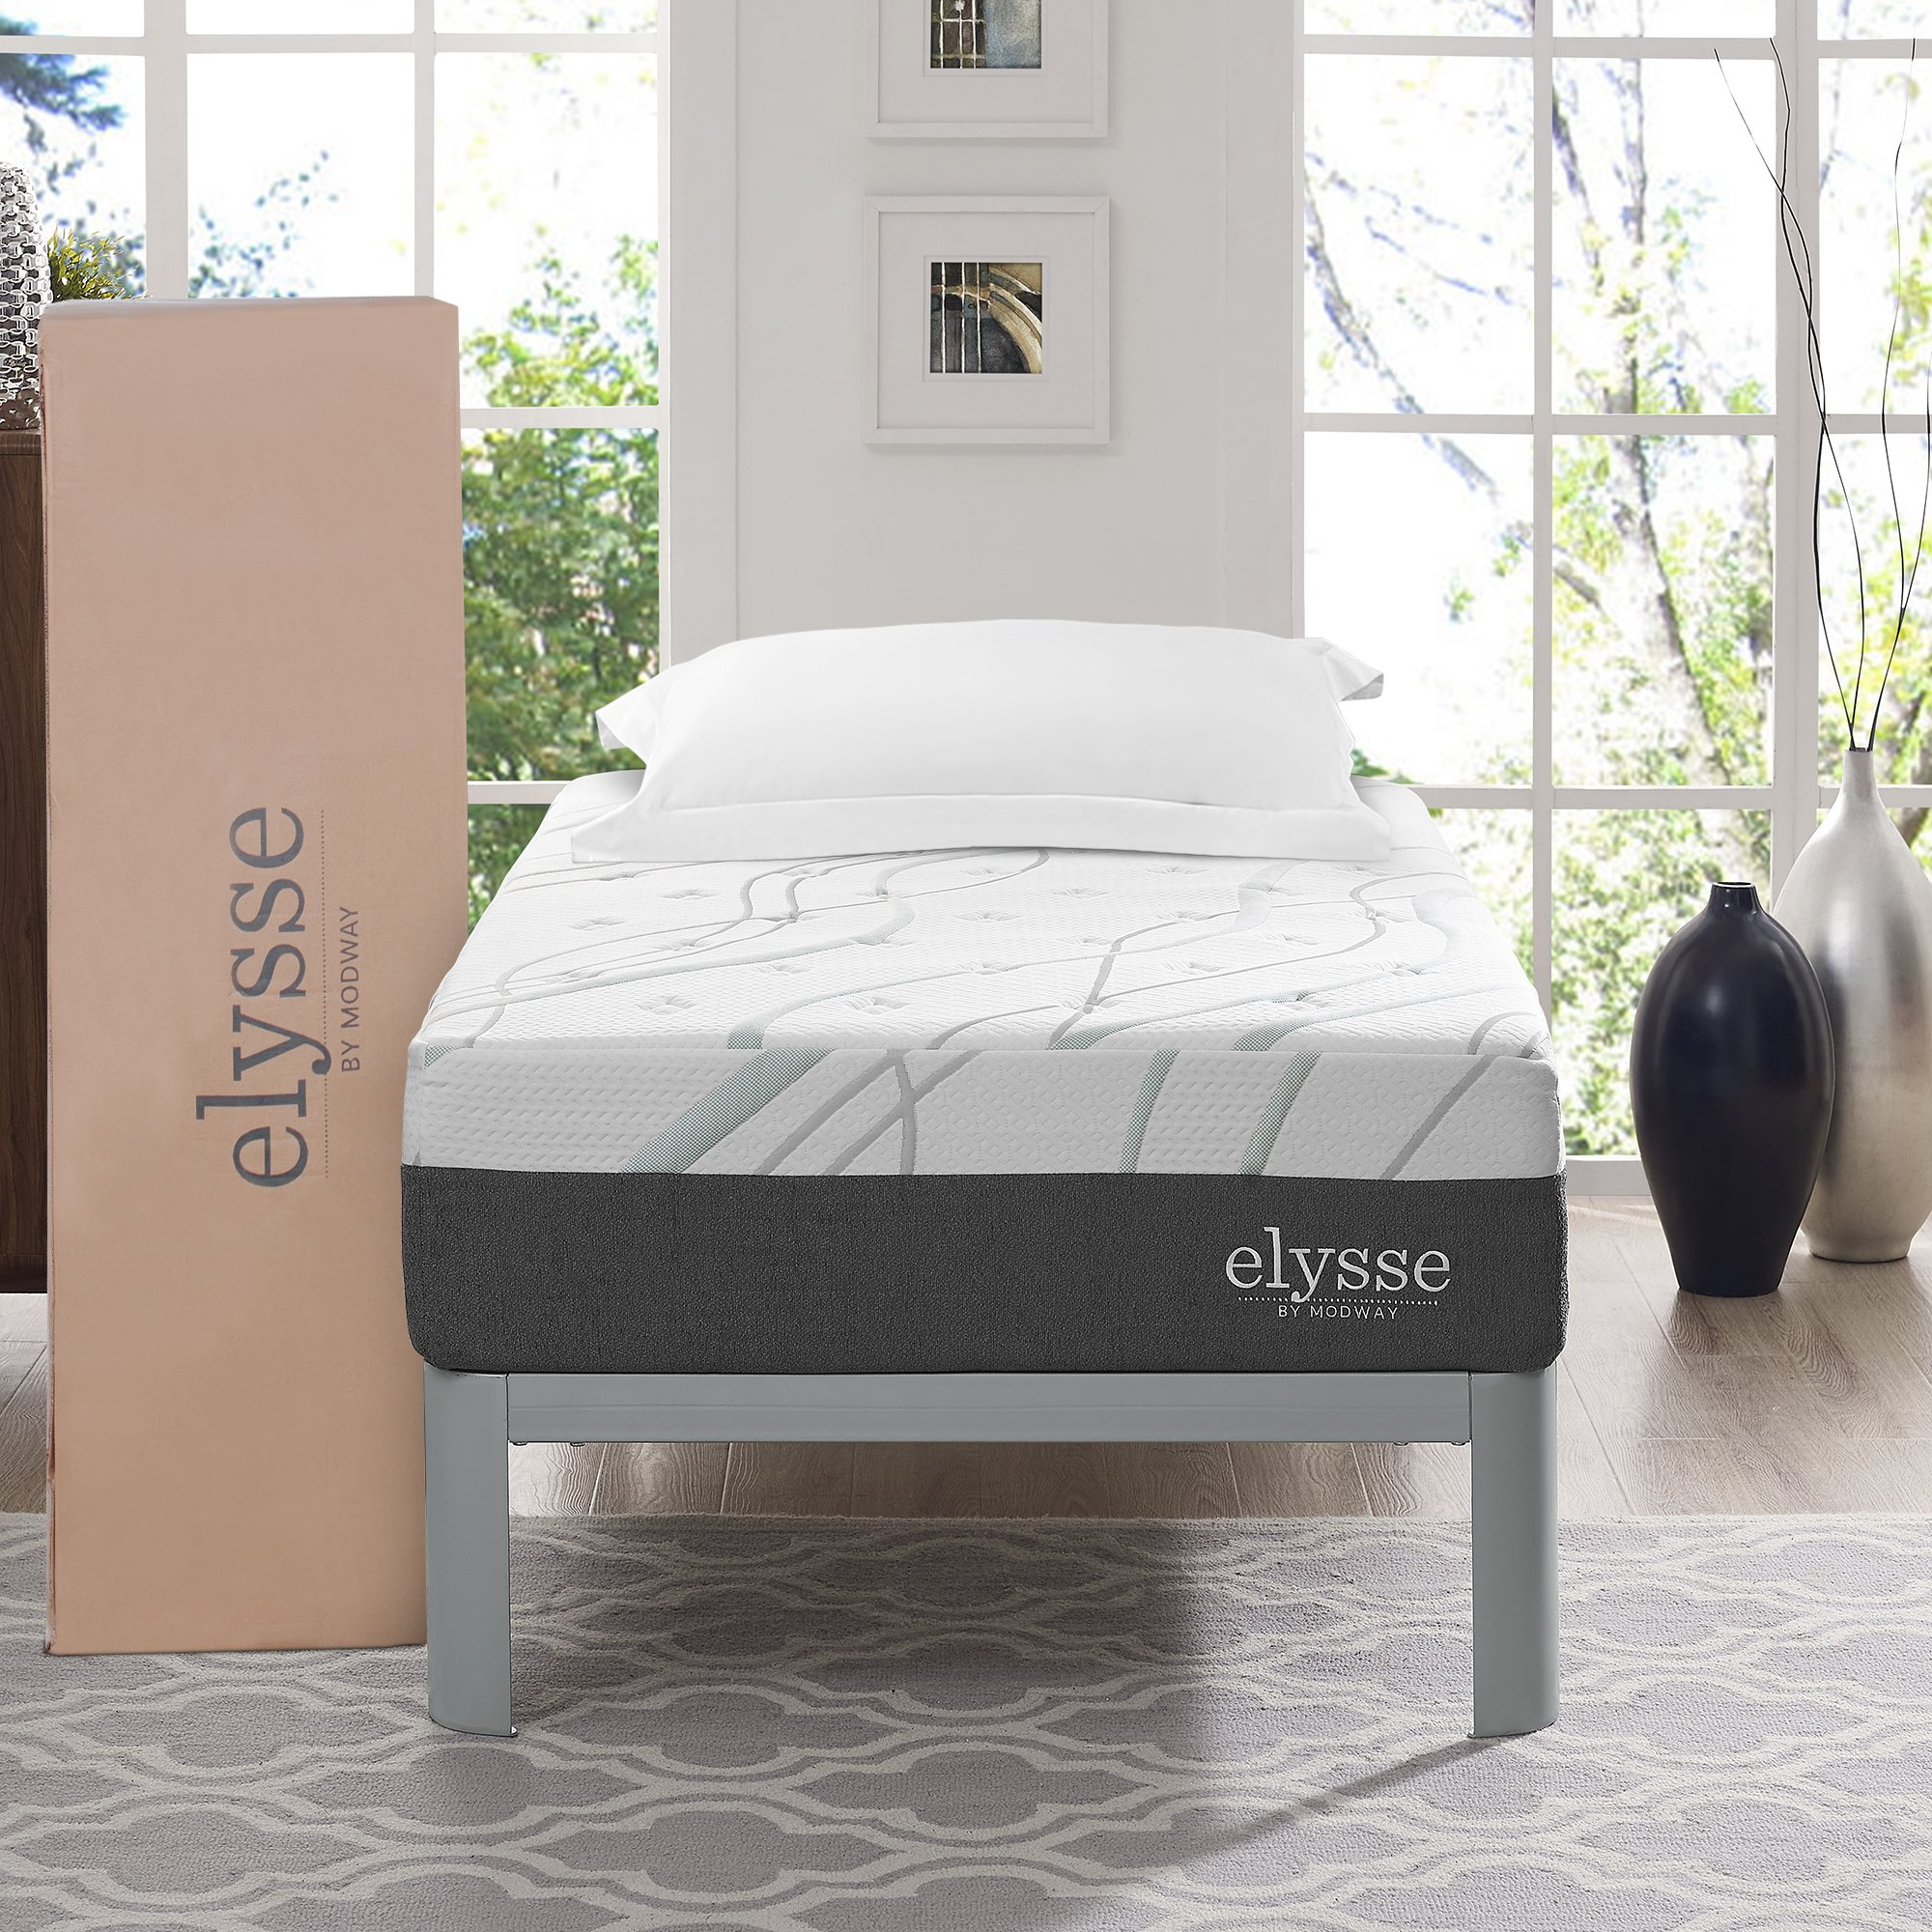 "Modway Premium Aveline Elysse 12"" Twin Cooling Hybrid Mattress - CertiPUR-US Certified Memory Foam - Individually Encased Coils - 10-Year Warranty"